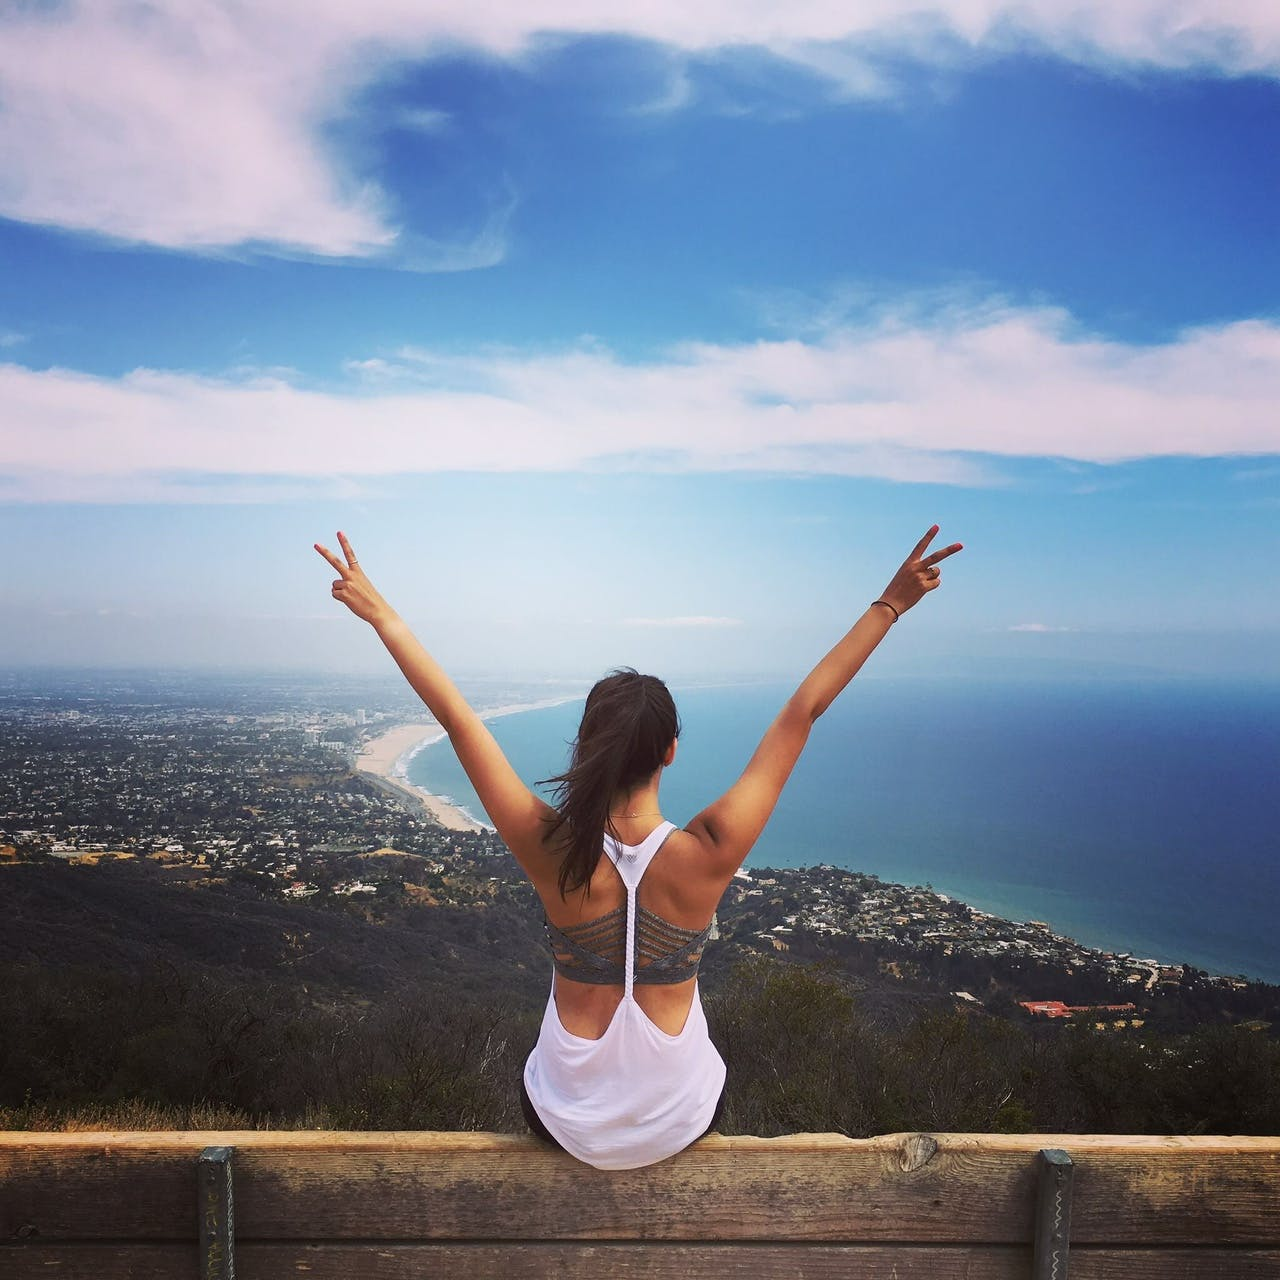 A girl holding up two peace signs while sitting on the edge of a bench overlooking the coast